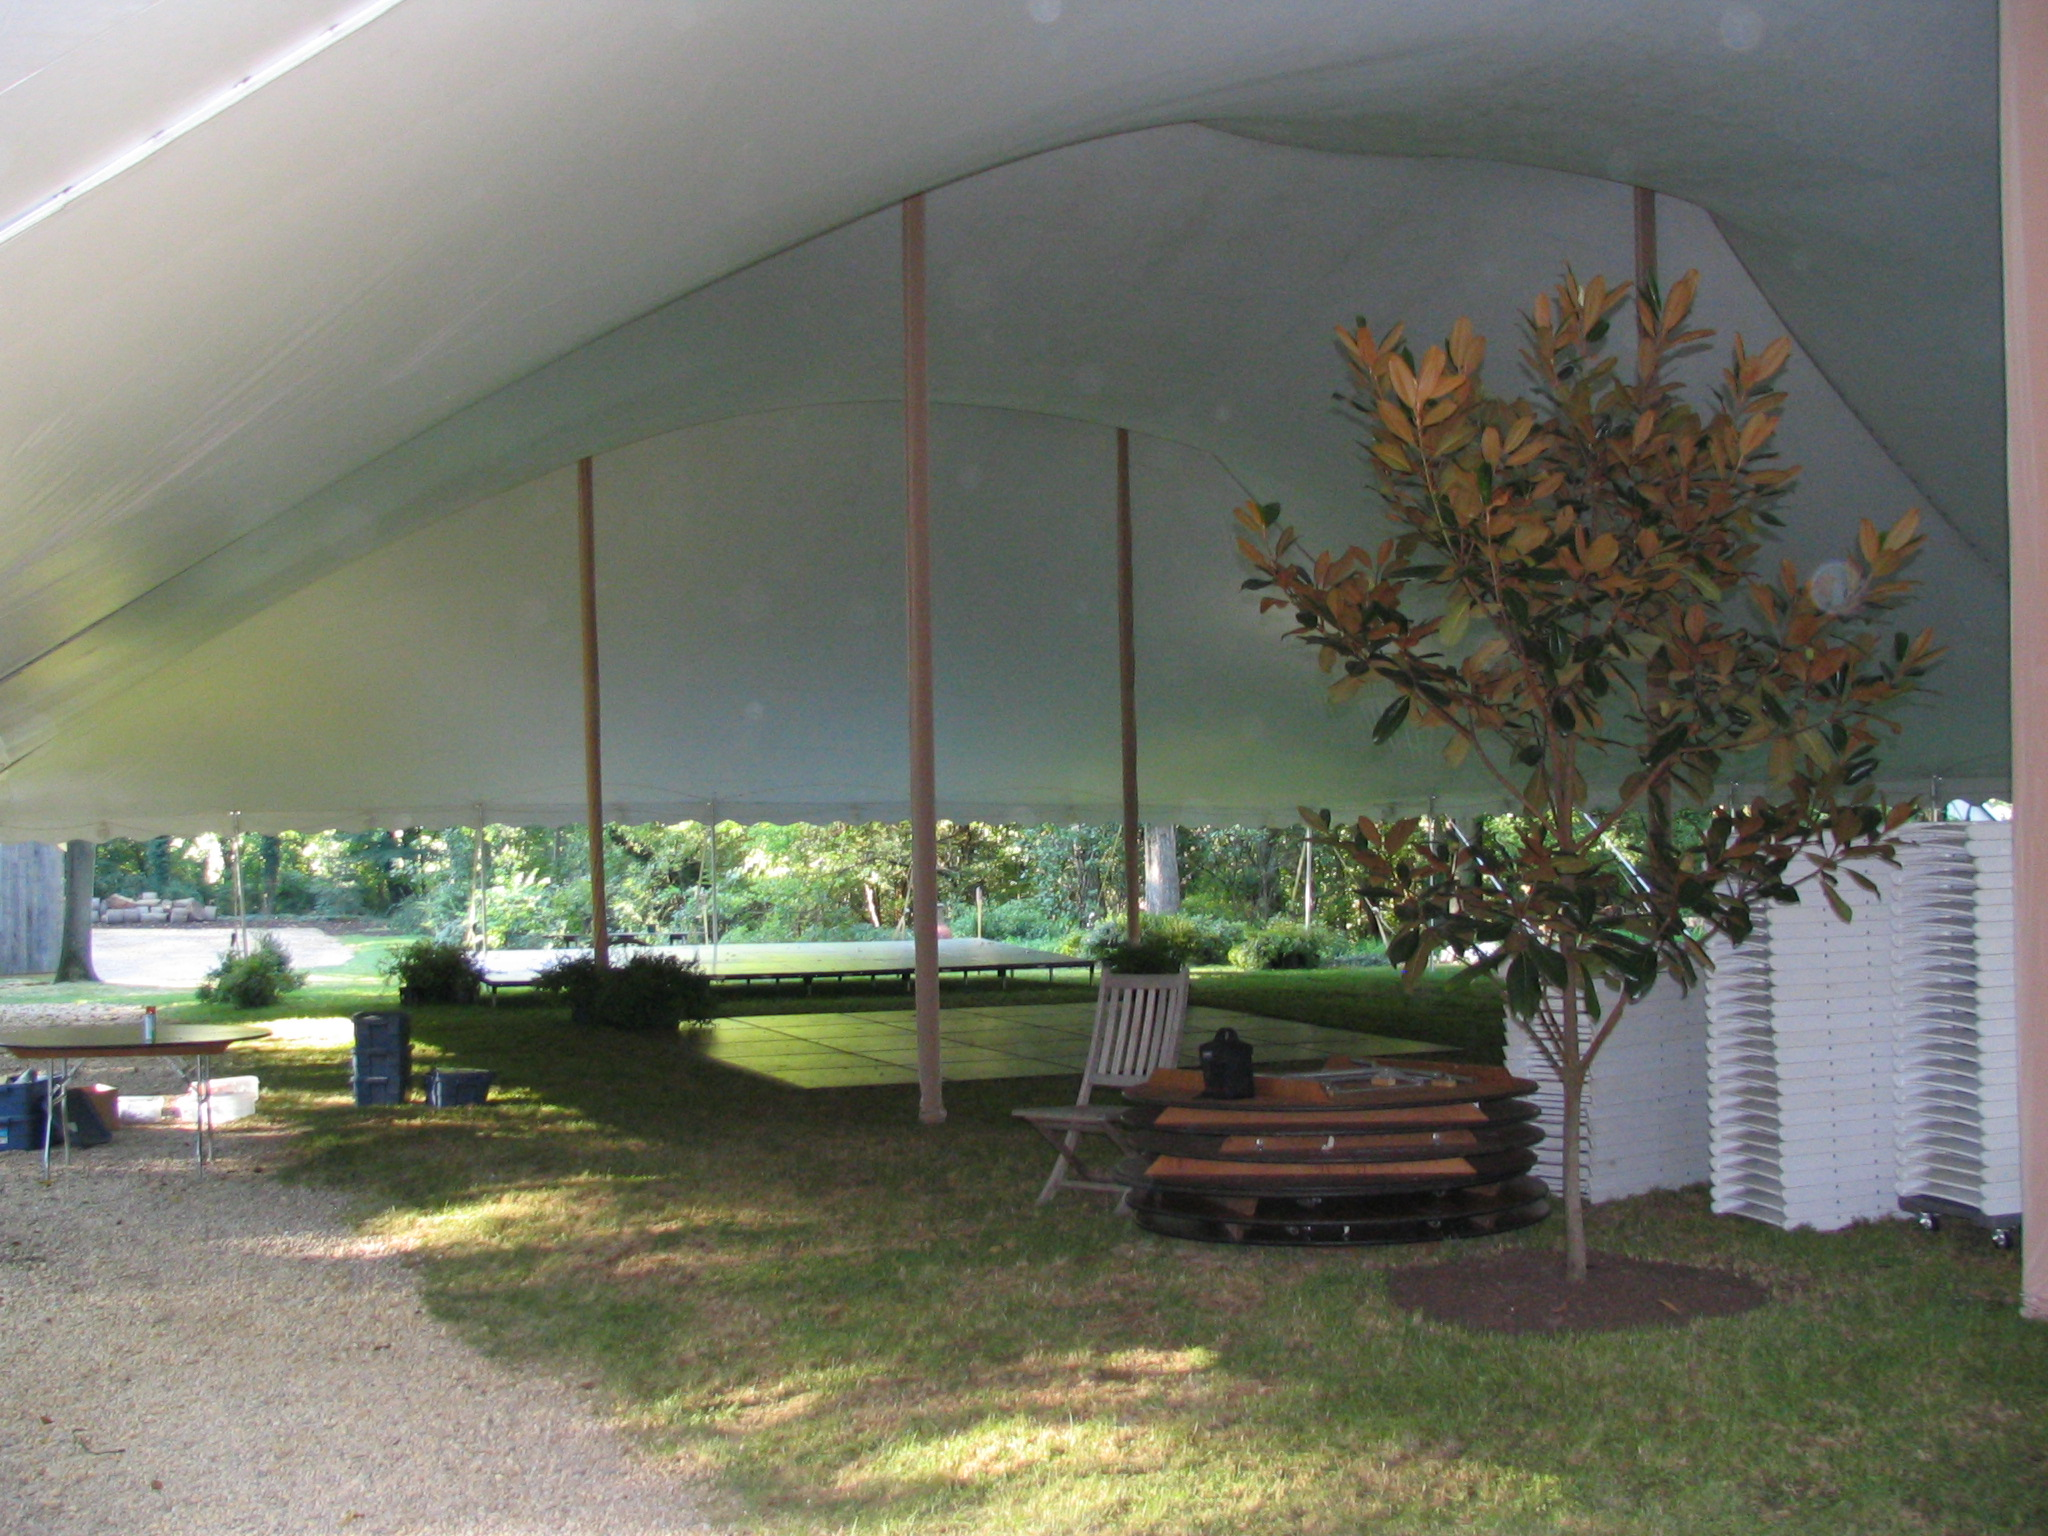 Tent over a tree